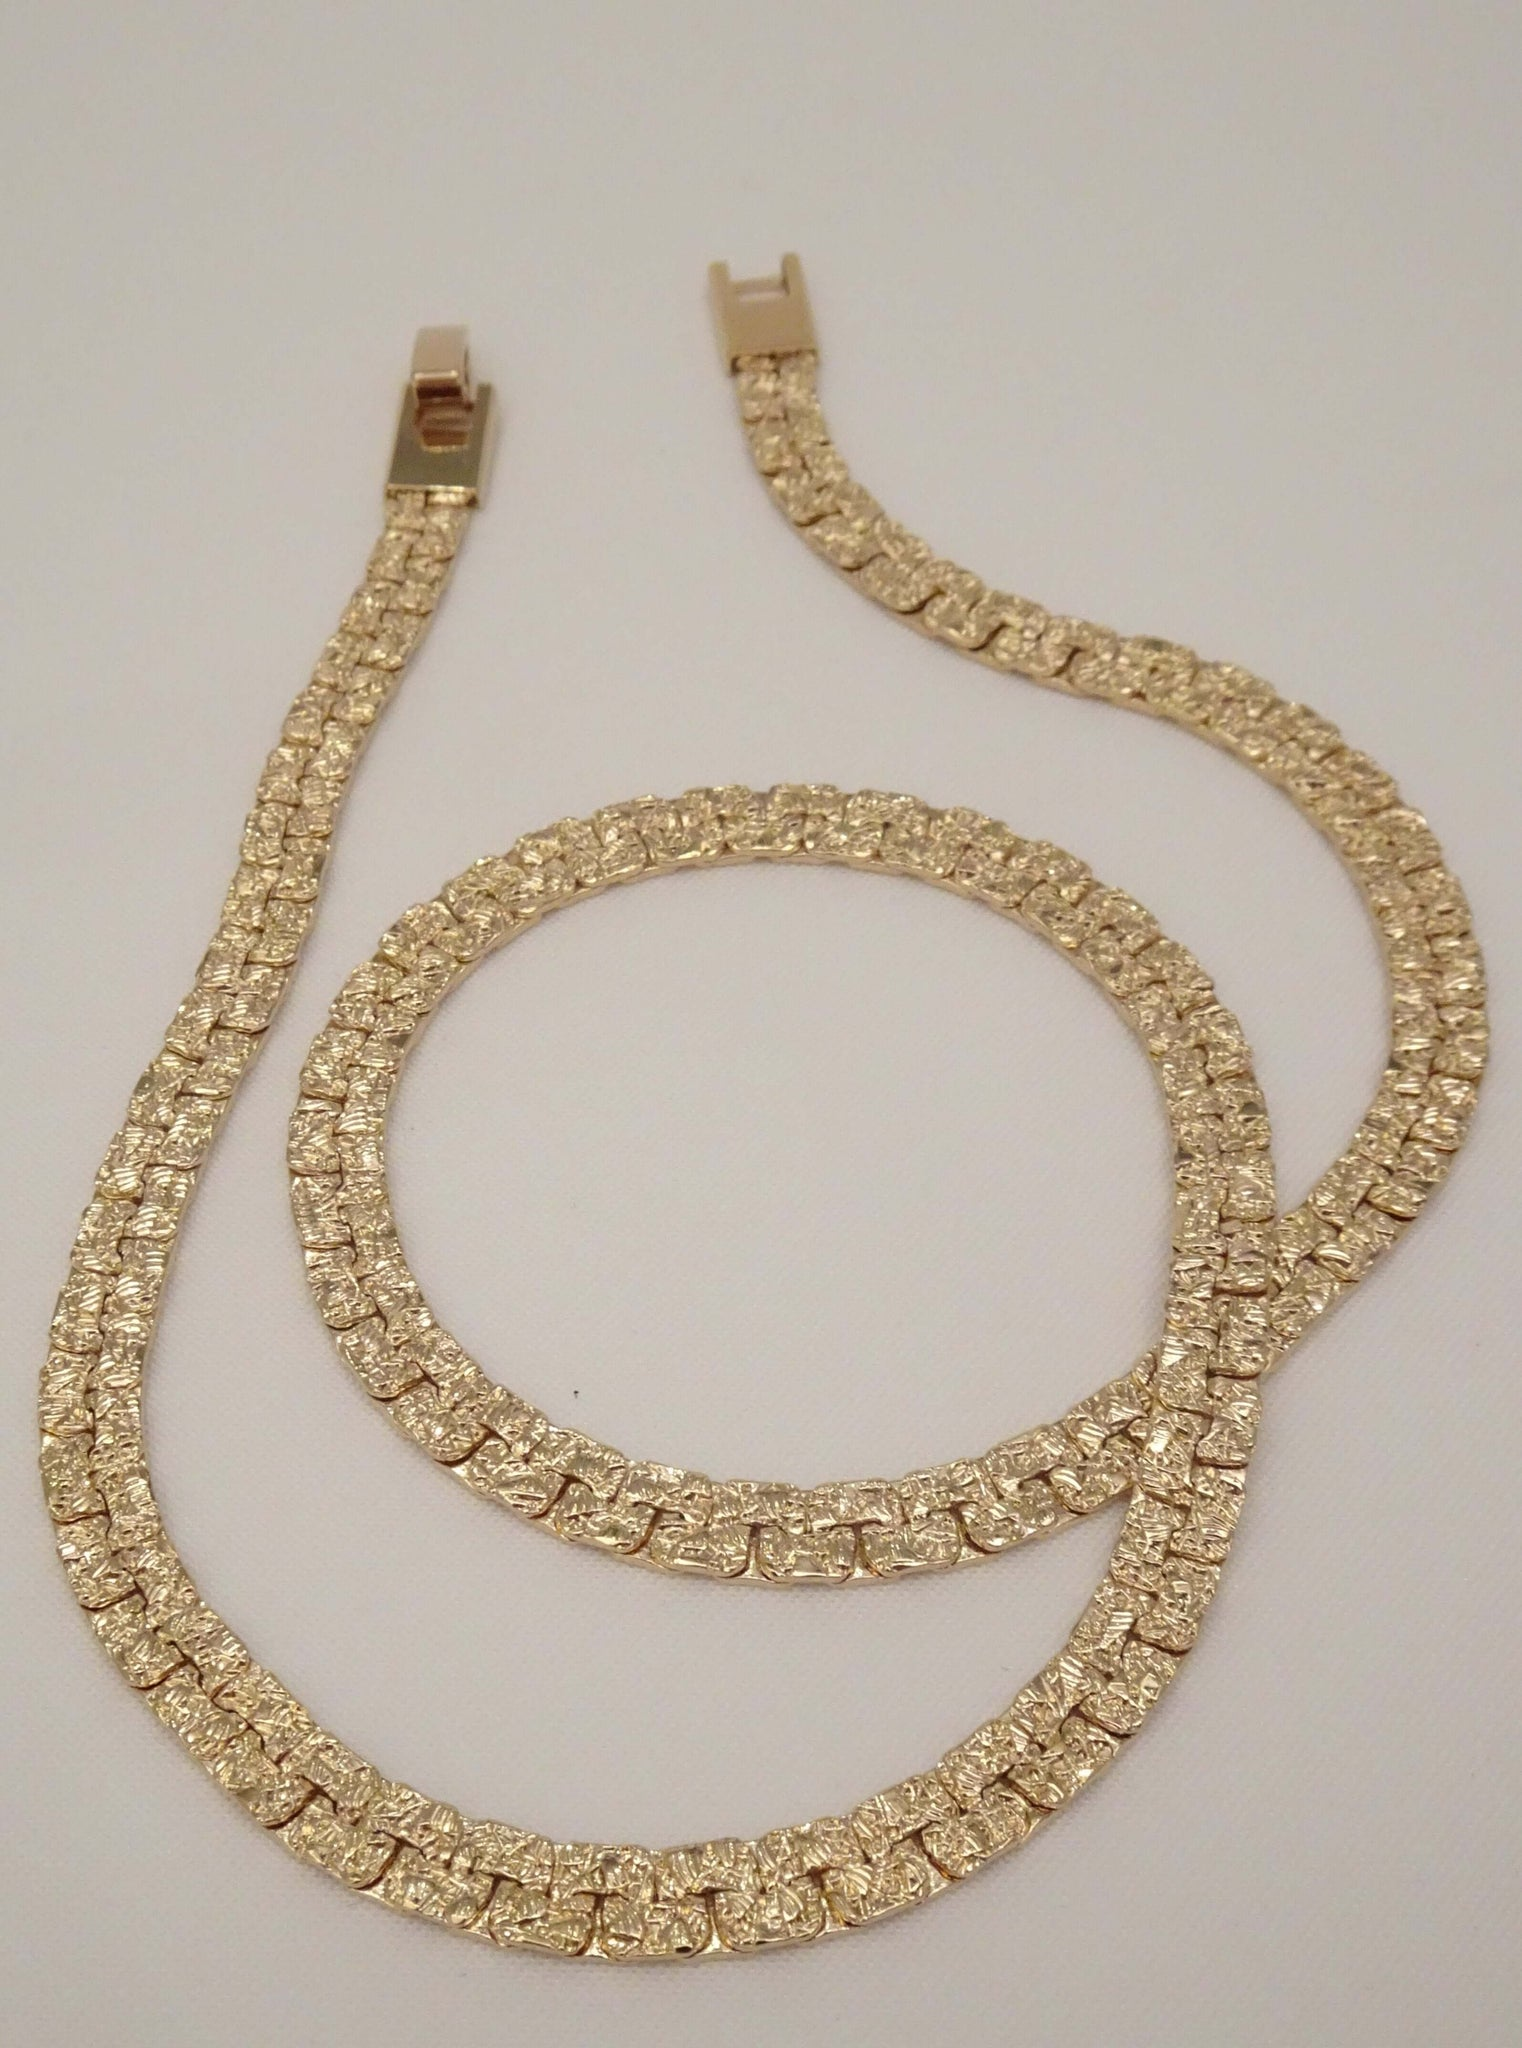 The Gold Nugget Chain Necklace Sparrow